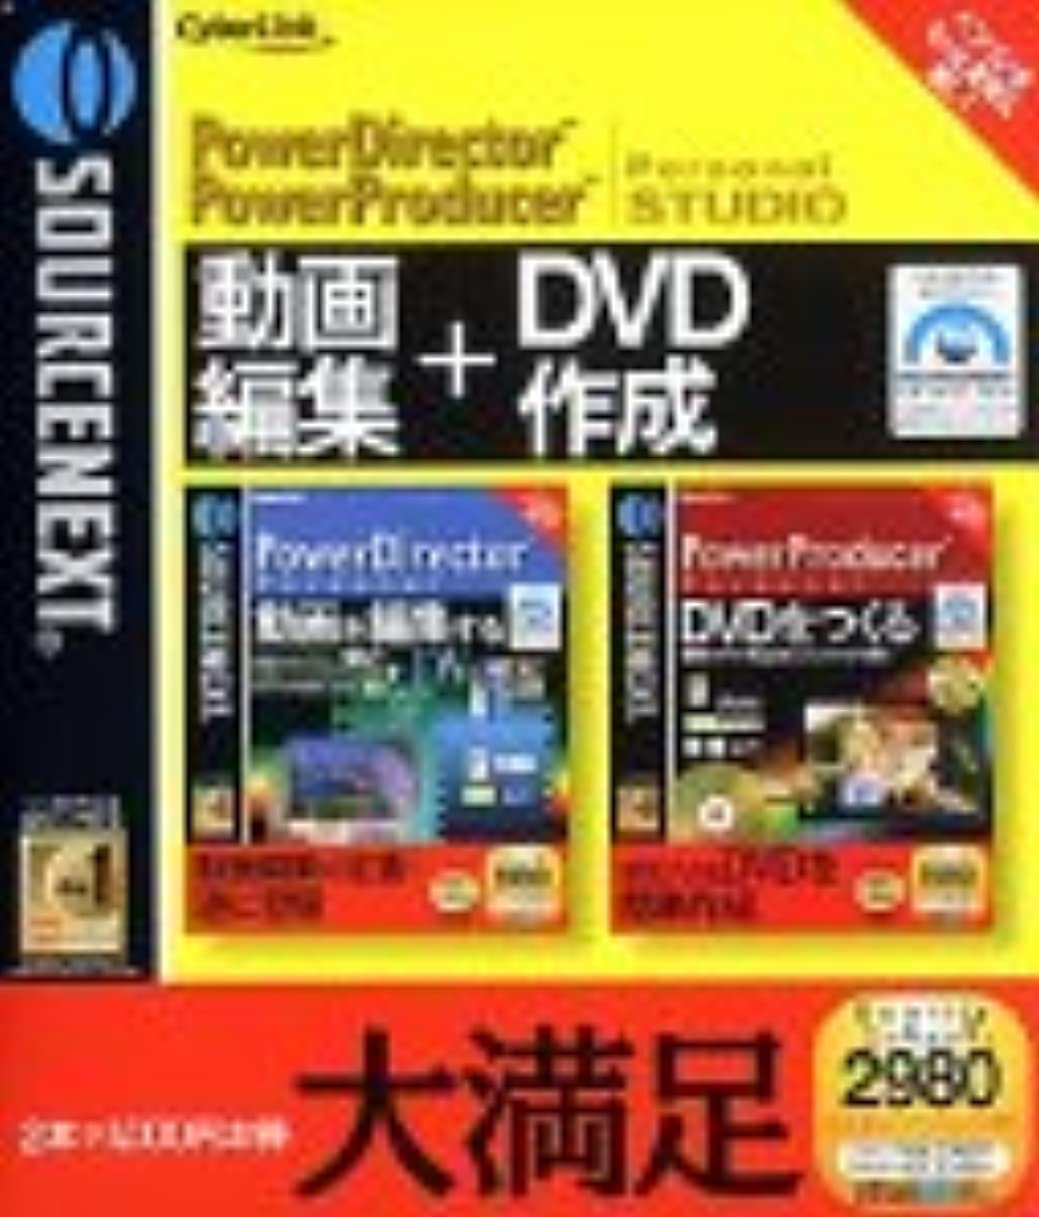 に慣れハイジャック勝利したPowerDirector・PowerProducer Personal STUDIO